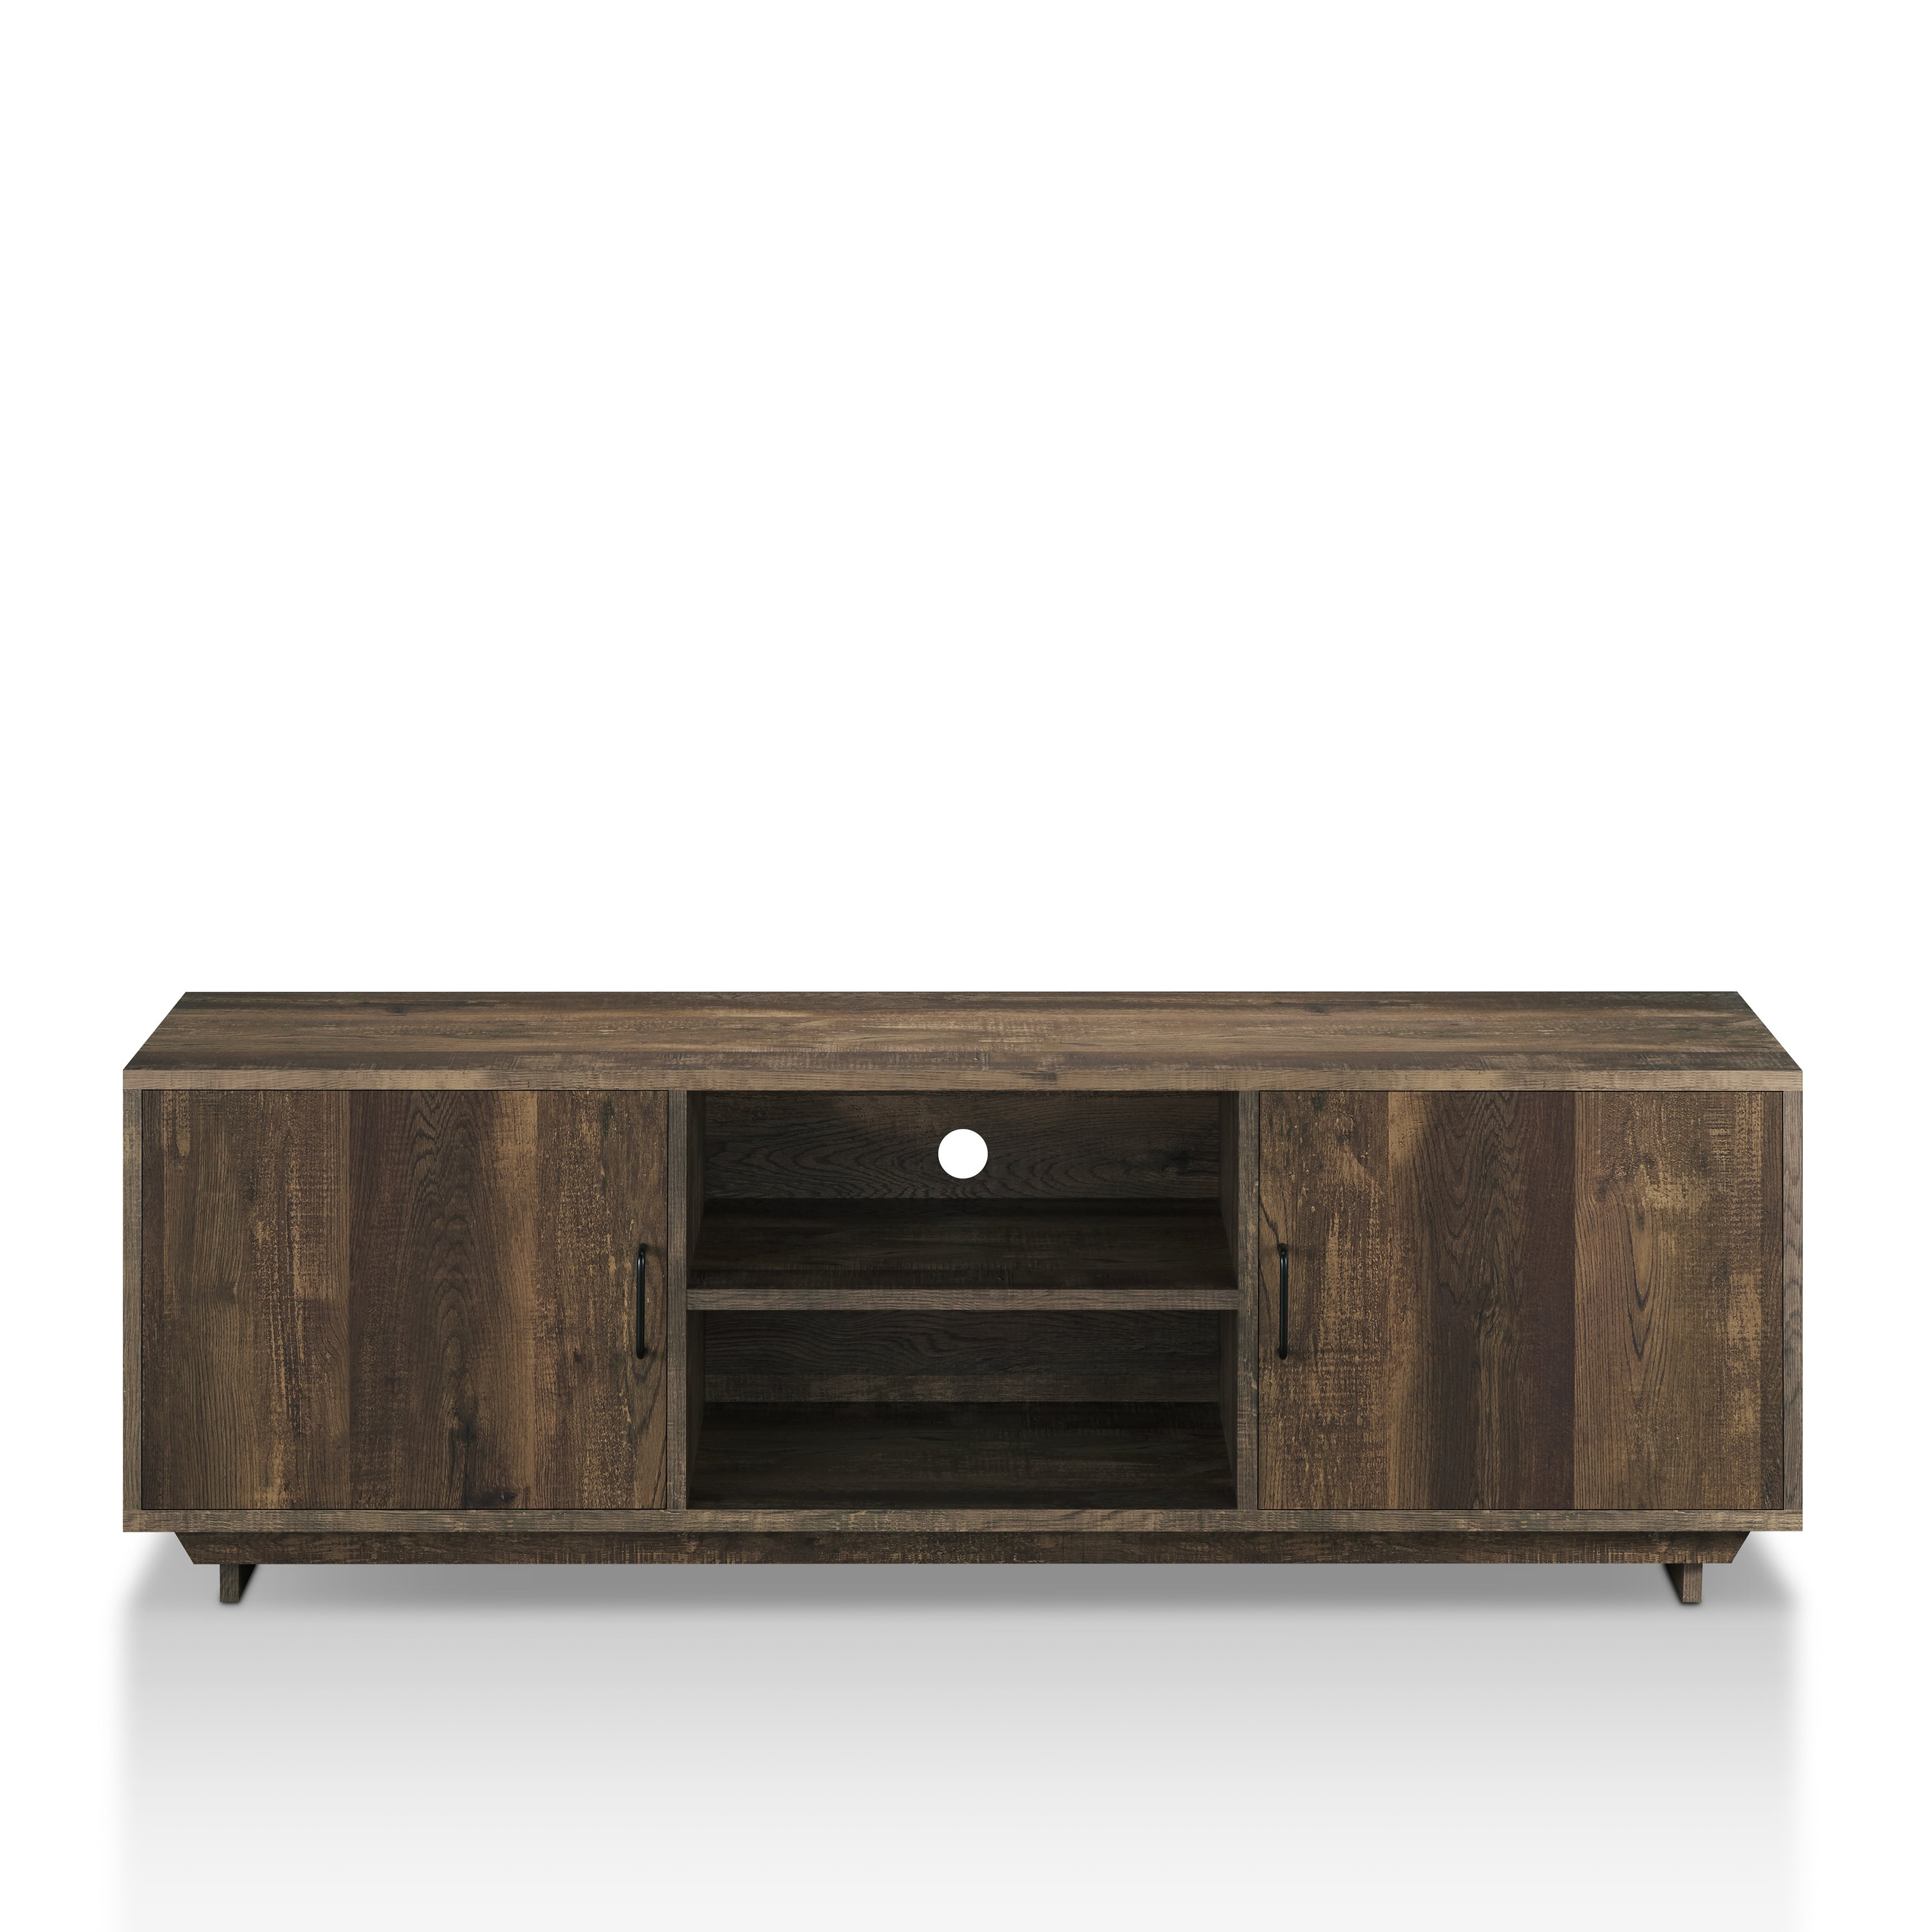 Popular Shop Furniture Of America Mailer Rustic Reclaimed Oak 63 Inch Tv Inside Kai 63 Inch Tv Stands (Gallery 11 of 20)